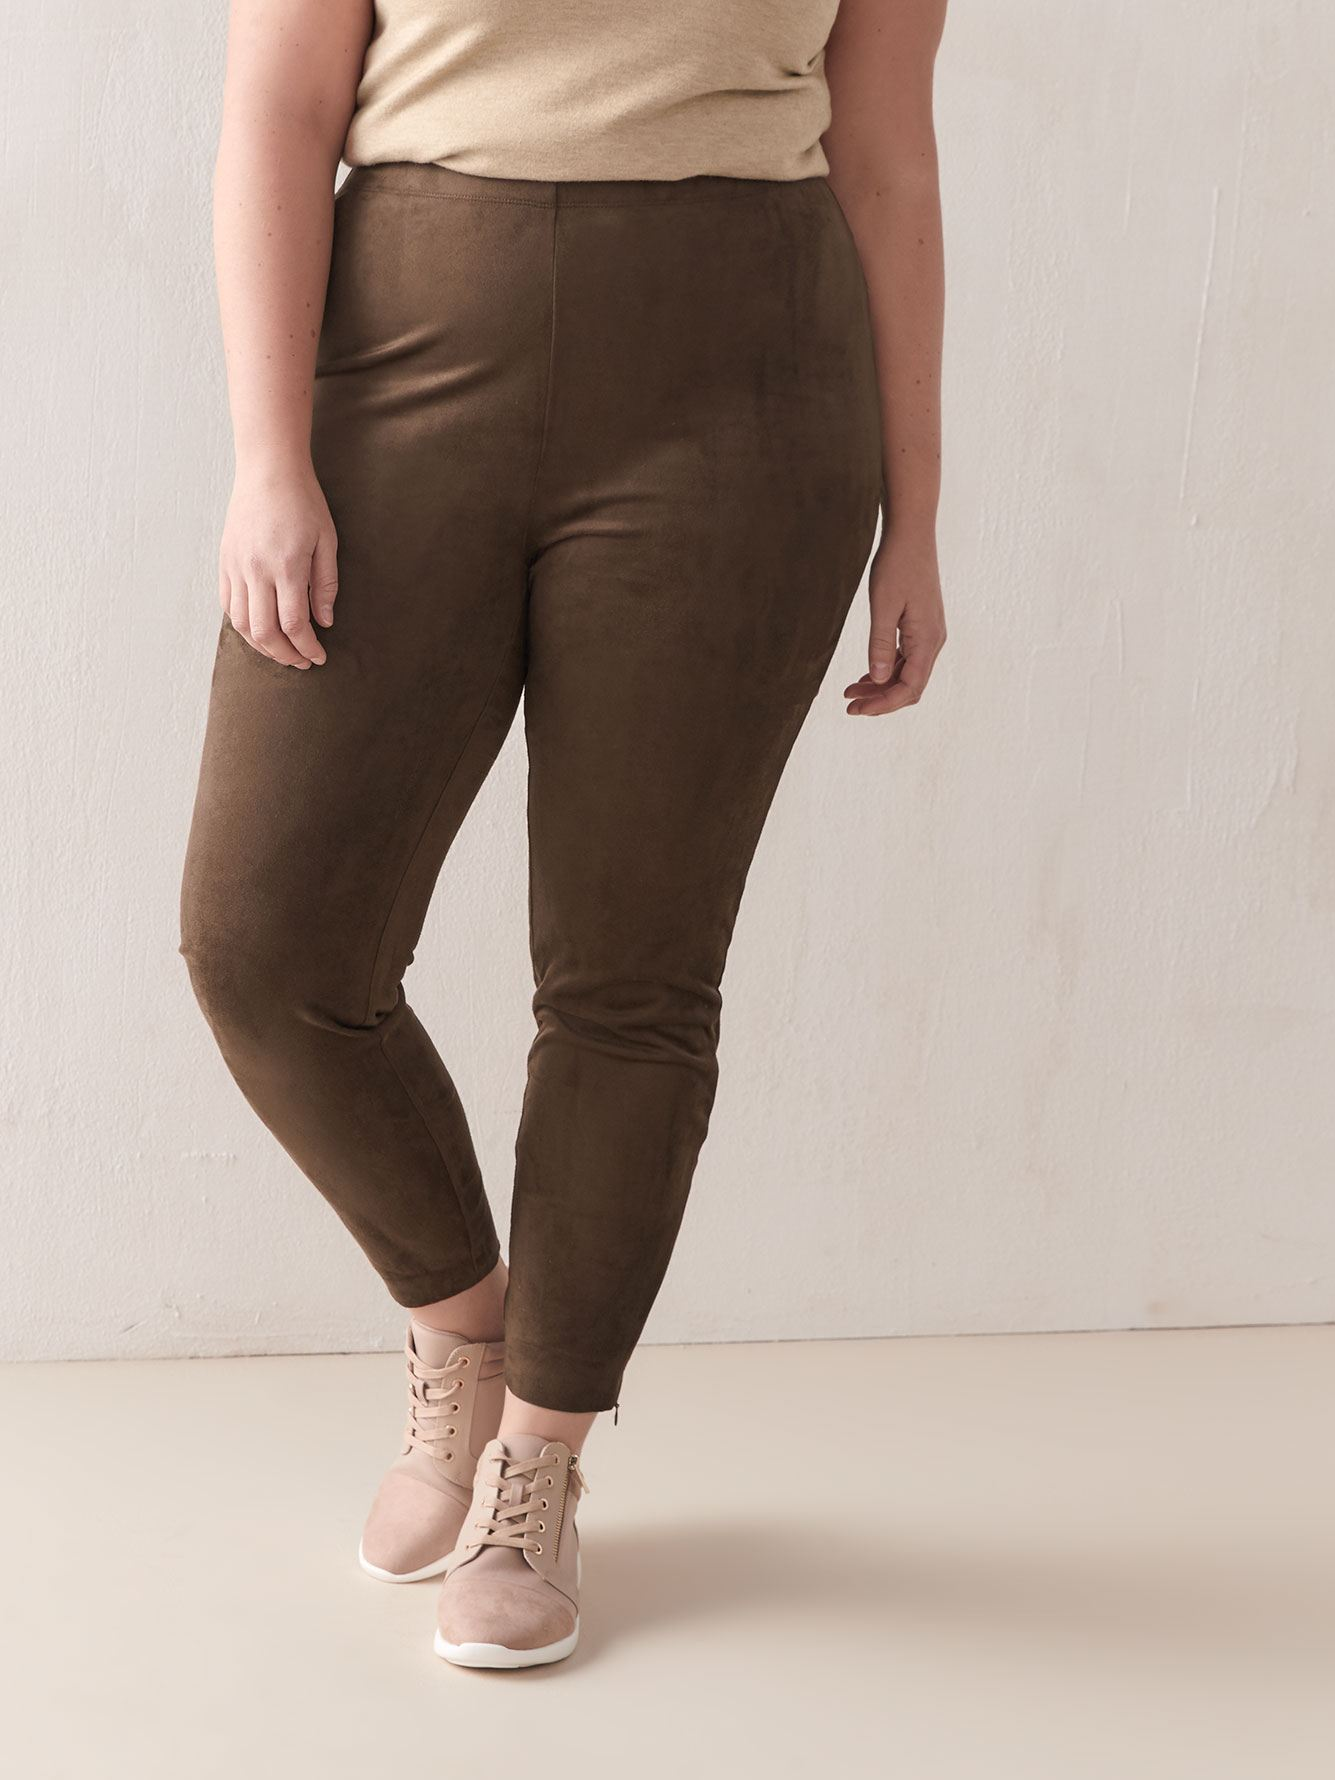 Stretch Faux Suede Leggings - Addition Elle